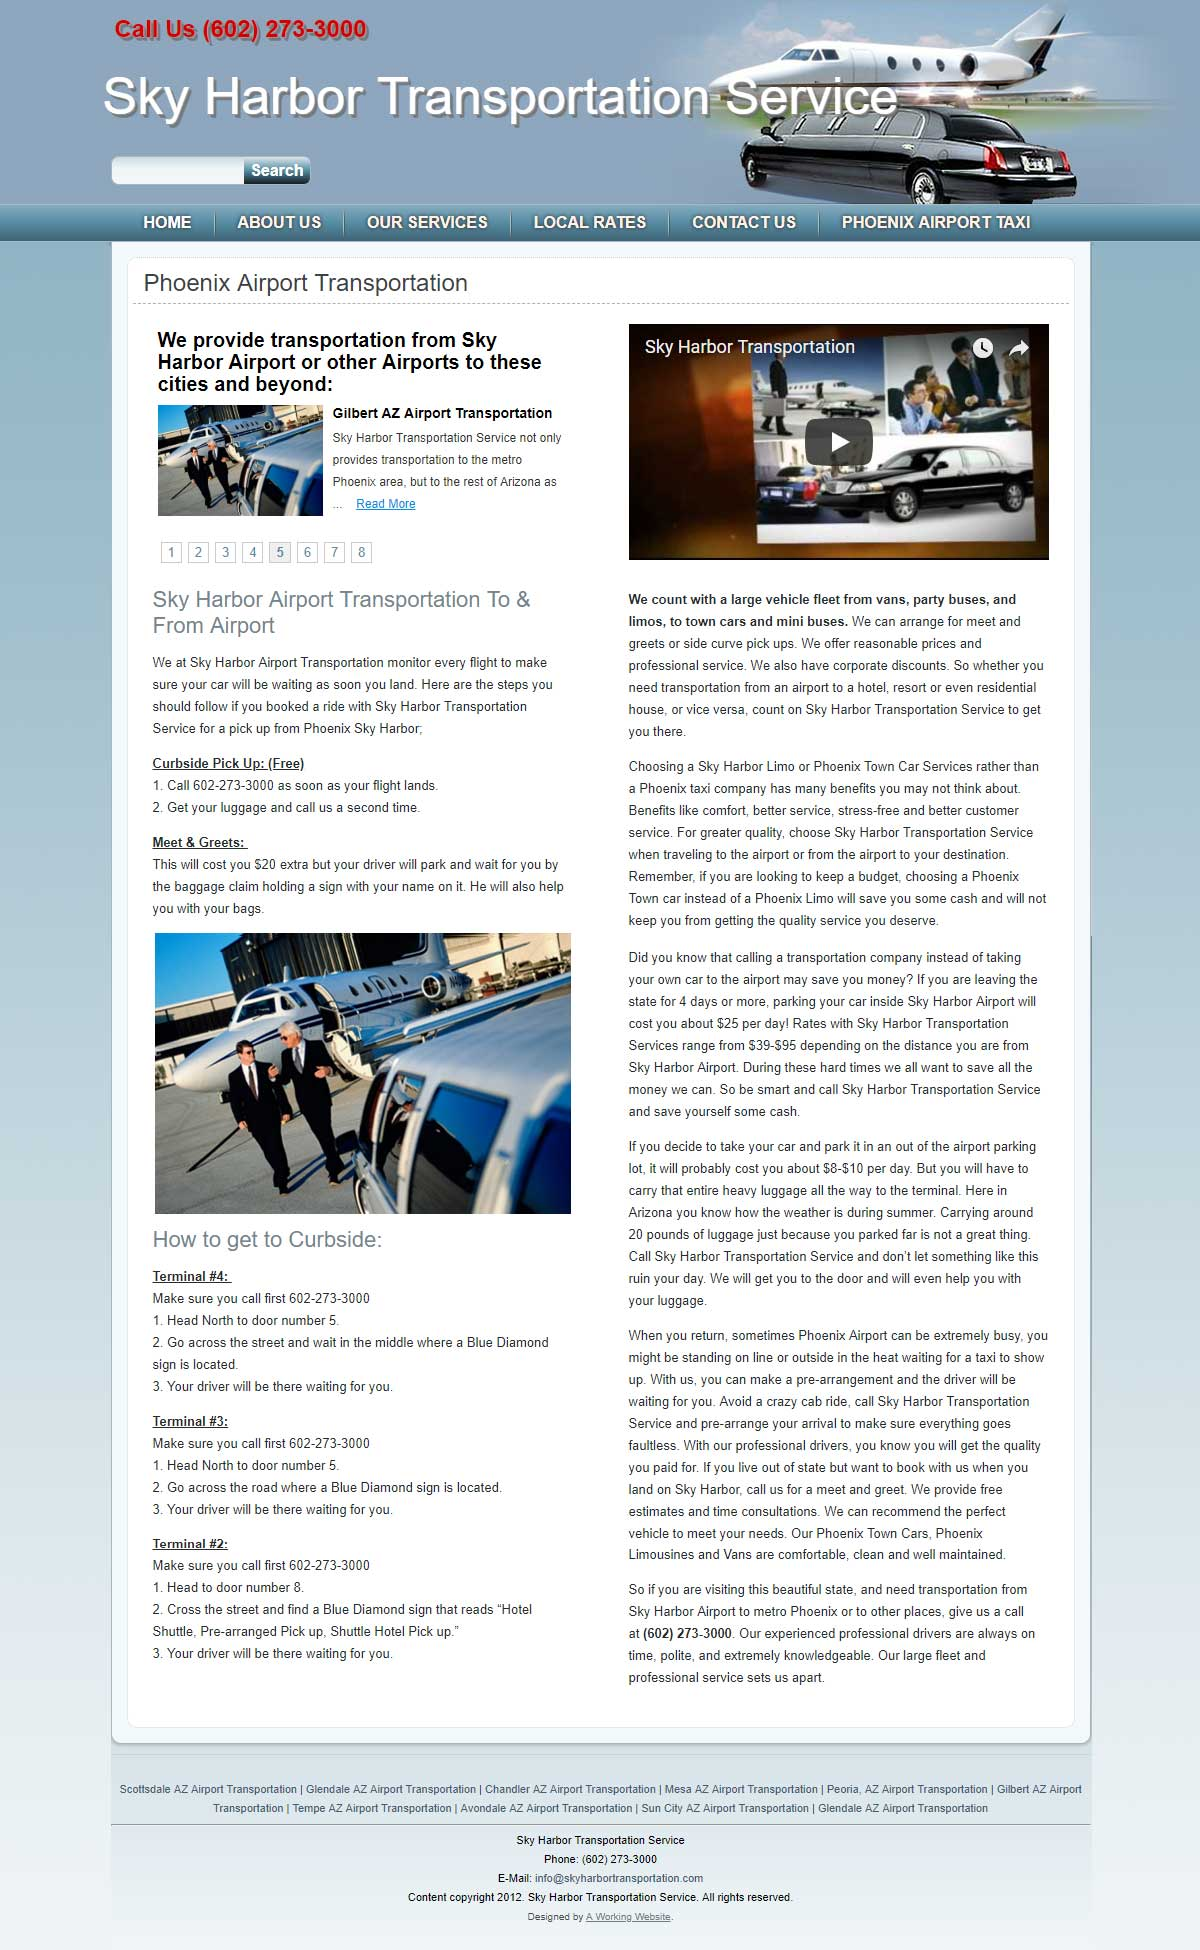 Web Design and Development for Sky Harbor Transportation Service